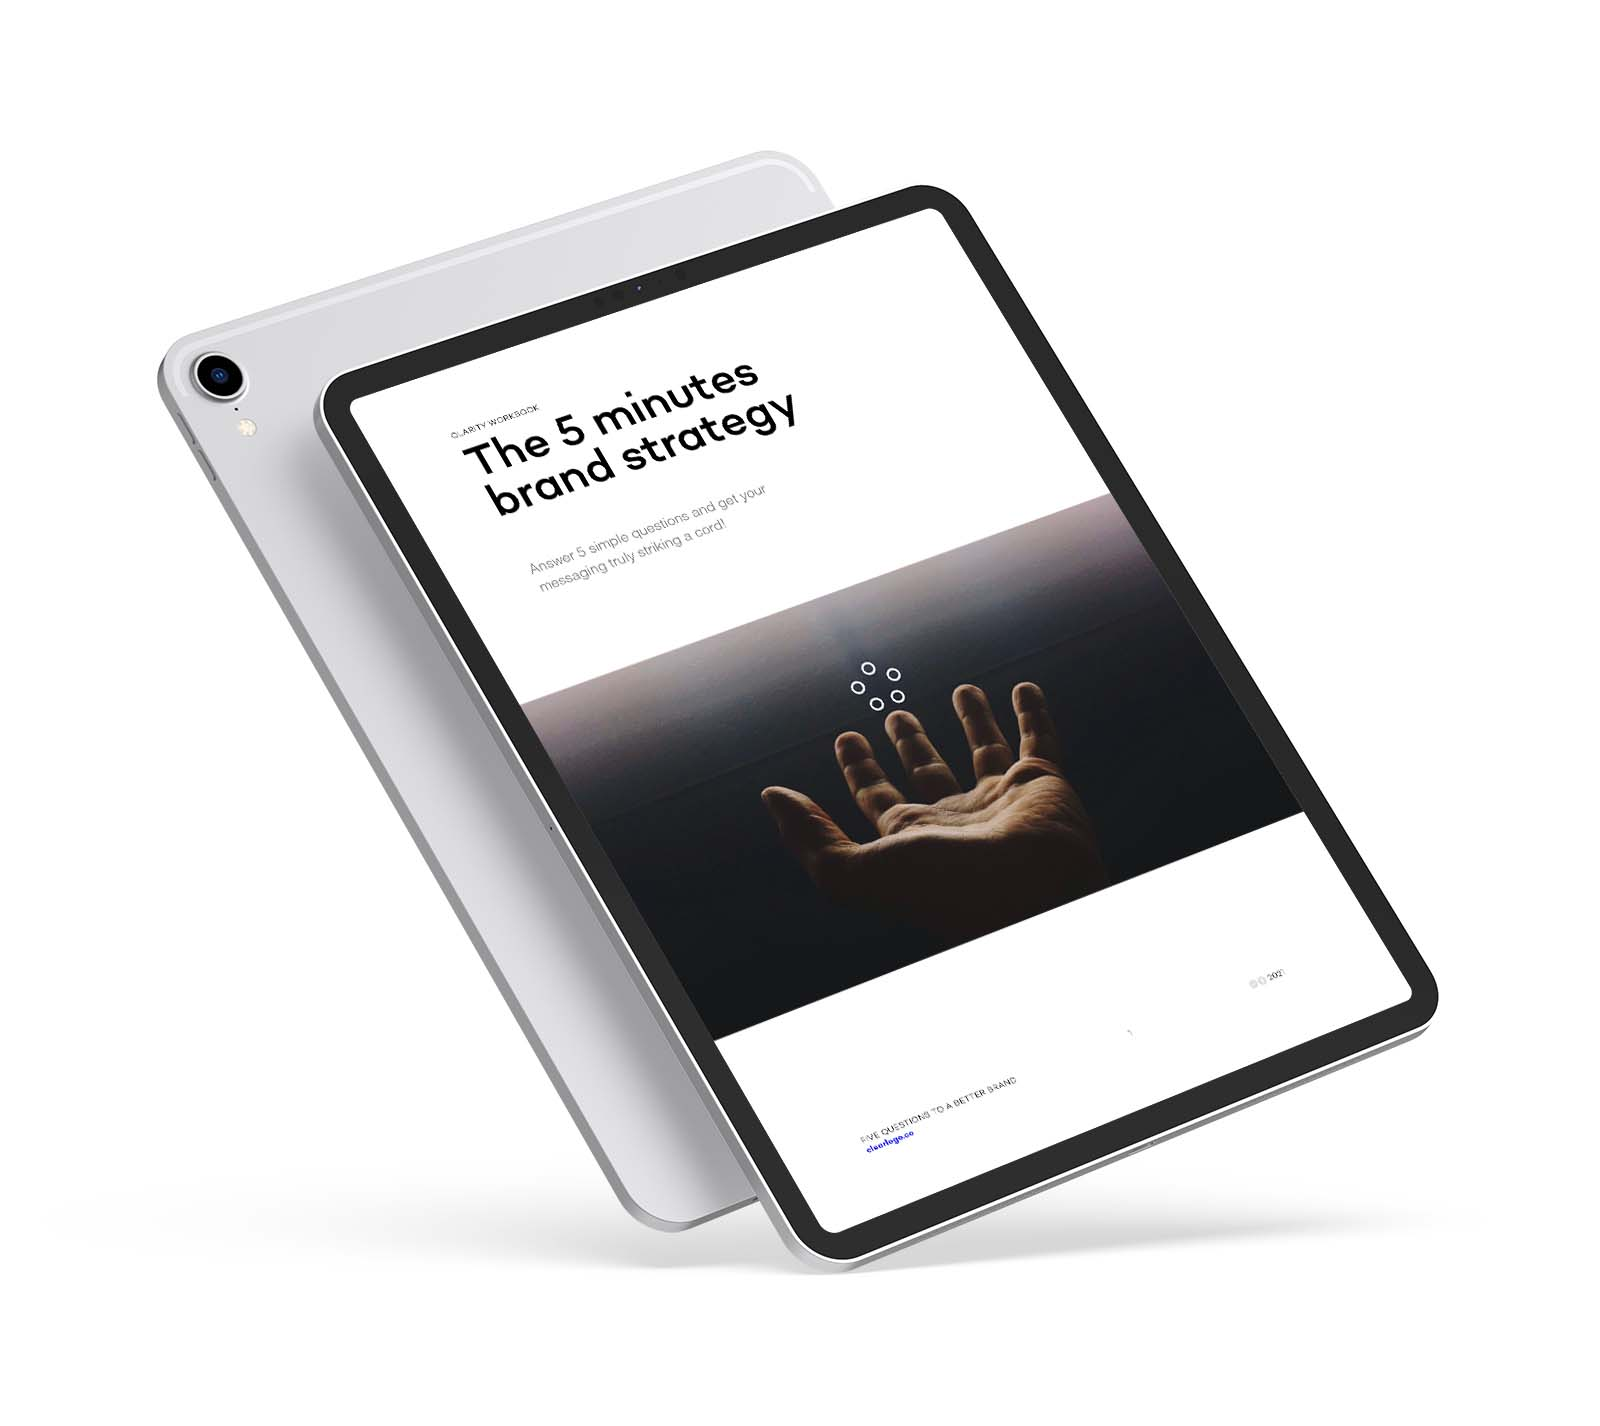 iPad displaying the cover of the 5 minute Strategy workbook